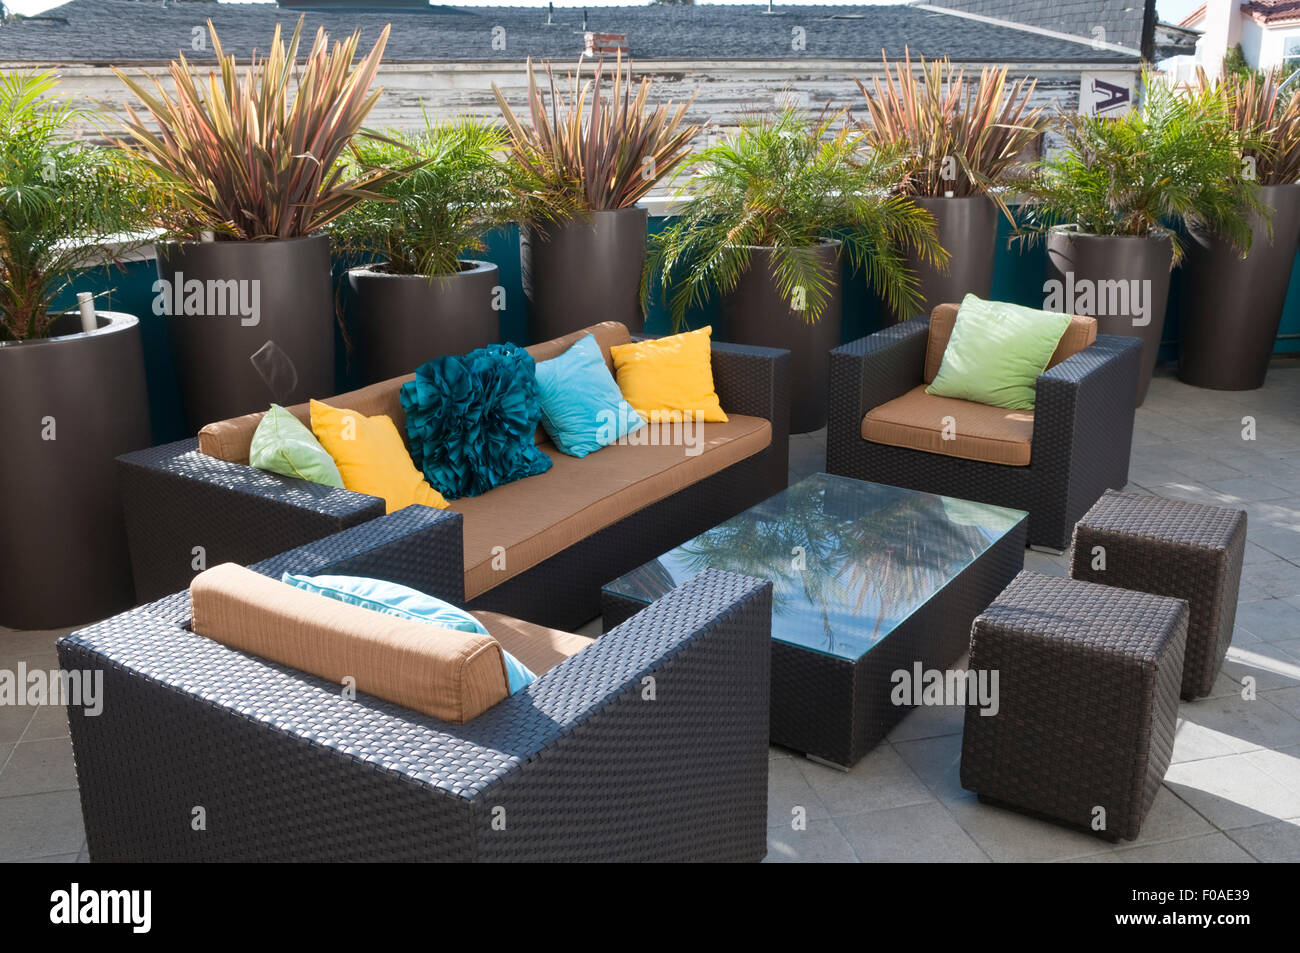 Stylish modern rattan patio furniture in dark brown with colorful cushions in a seating area surrounded by potted plants